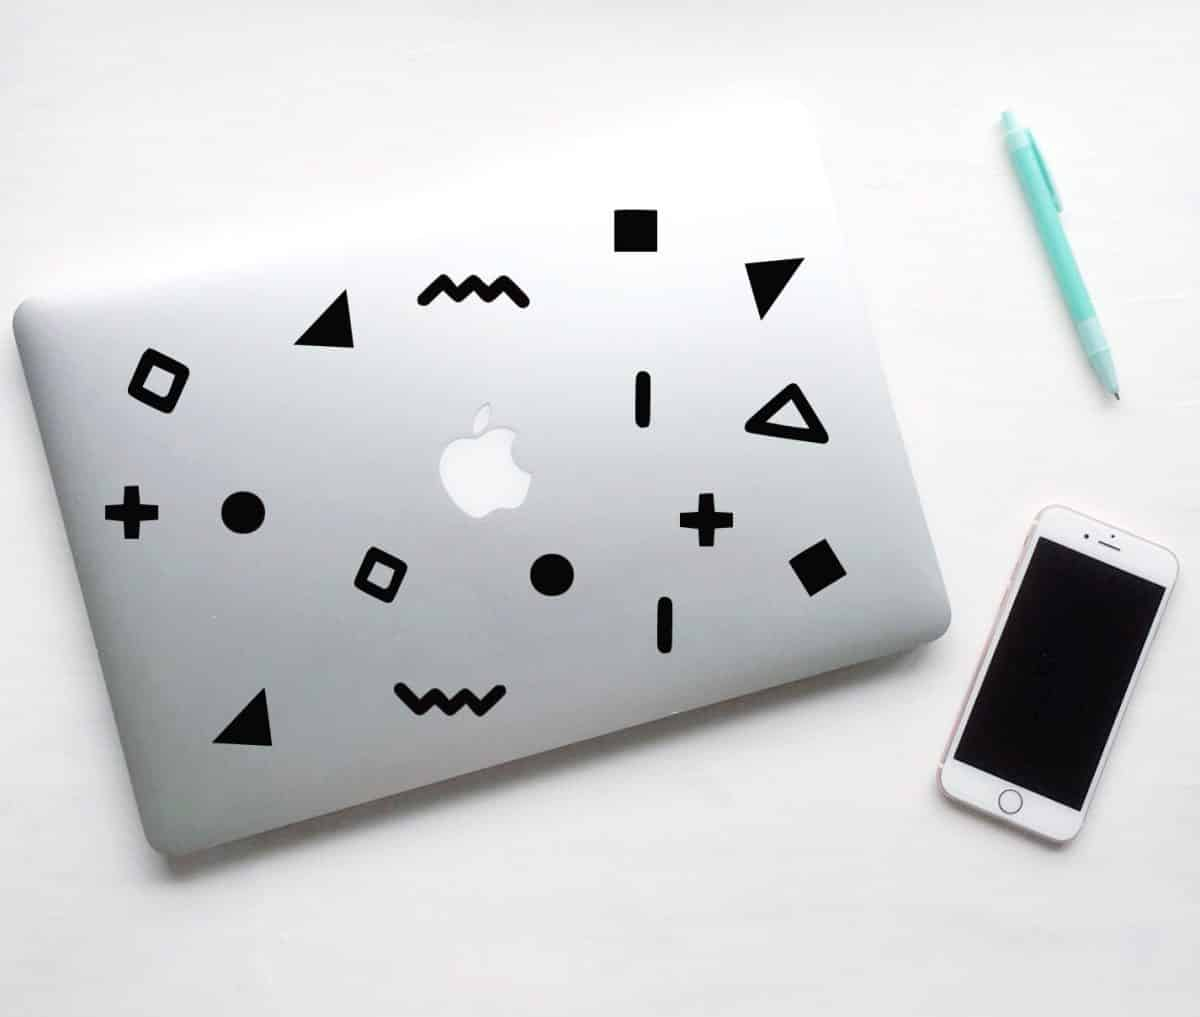 Geometric shapes in retro style laptop decals